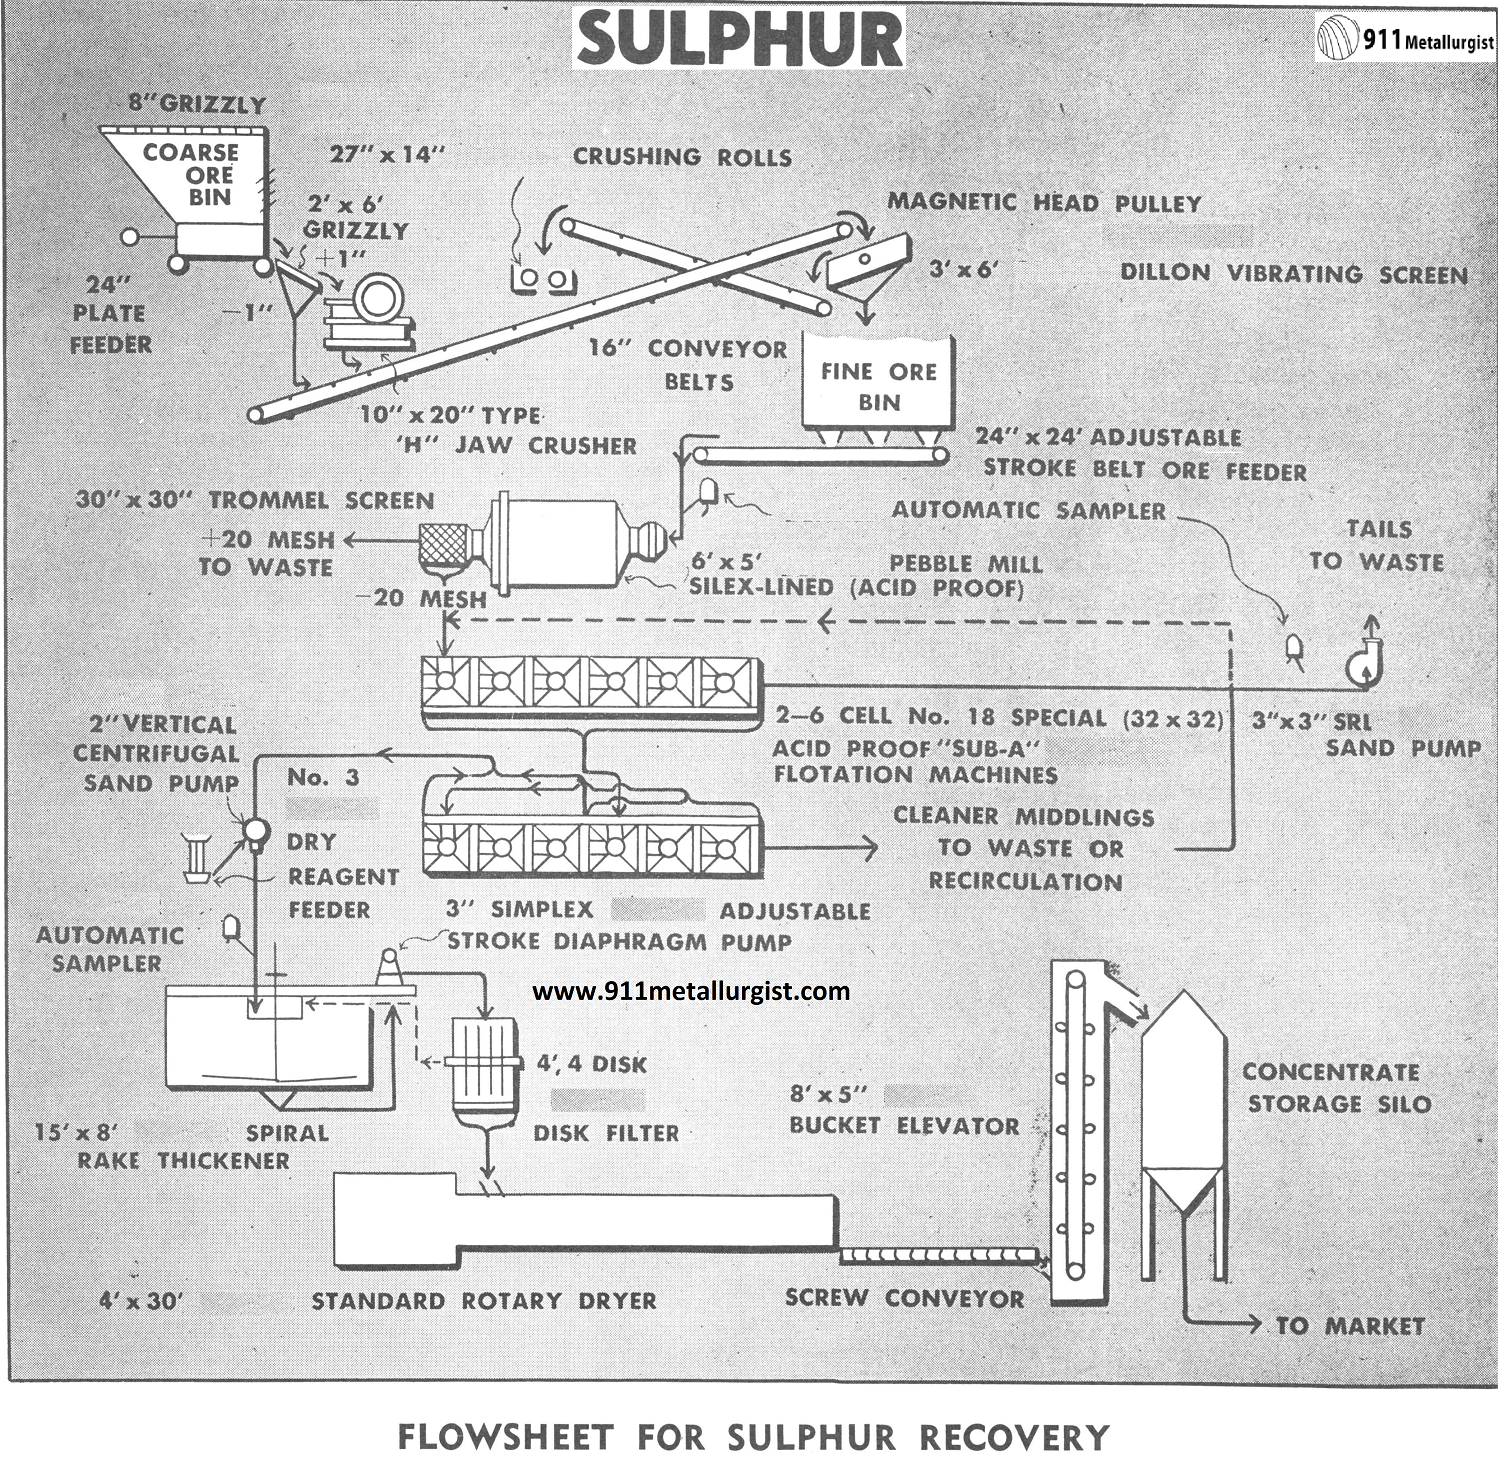 Flowsheet for Sulphur Recovery